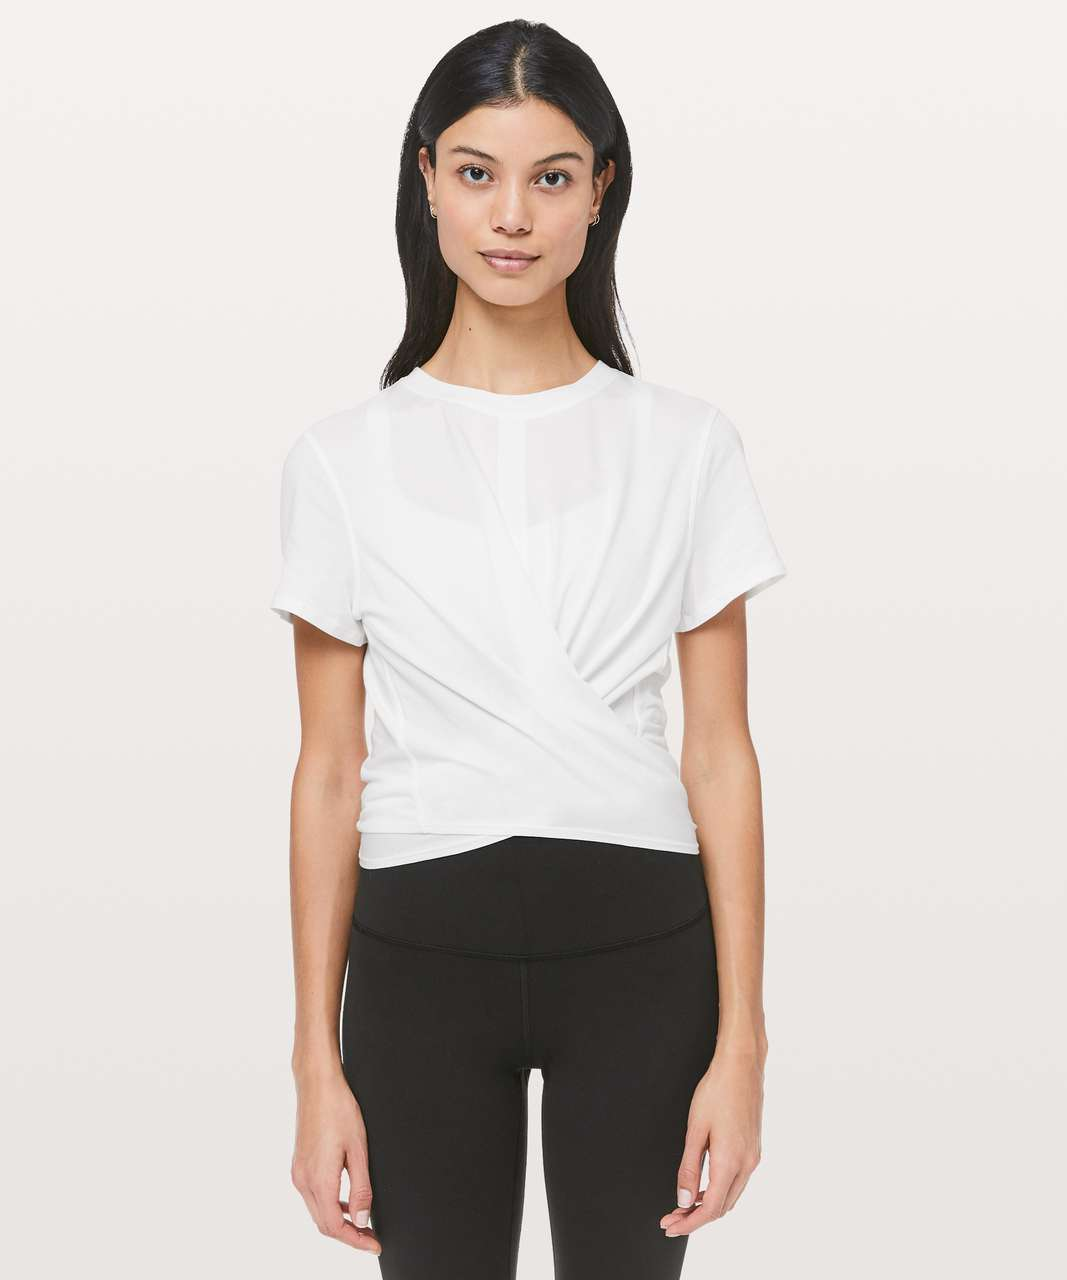 Lululemon Time To Restore Short Sleeve - White